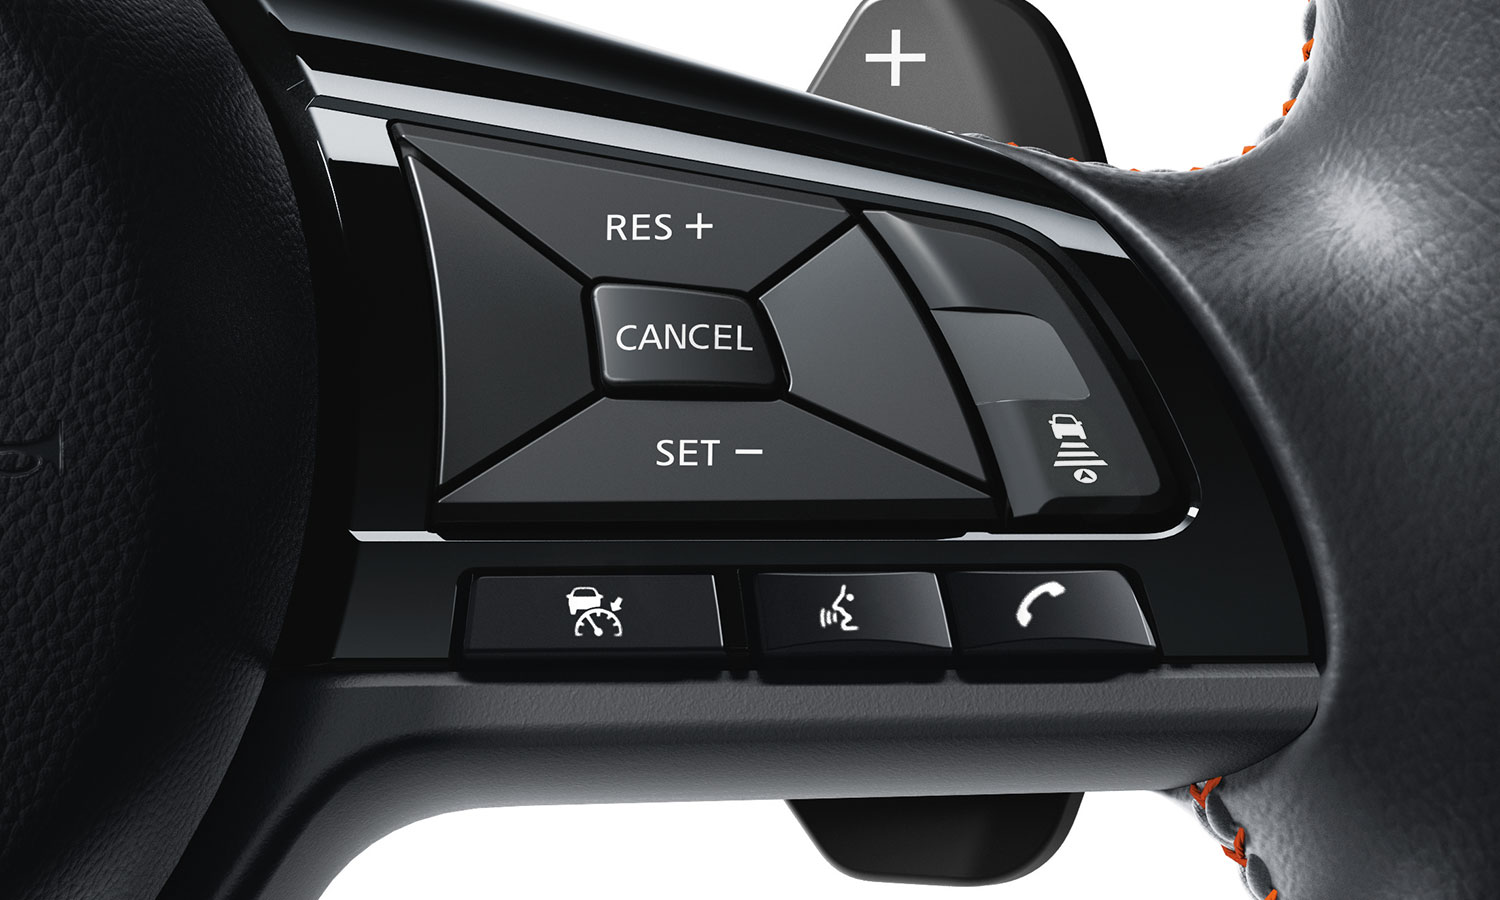 nissan Altima interior steering wheel controls